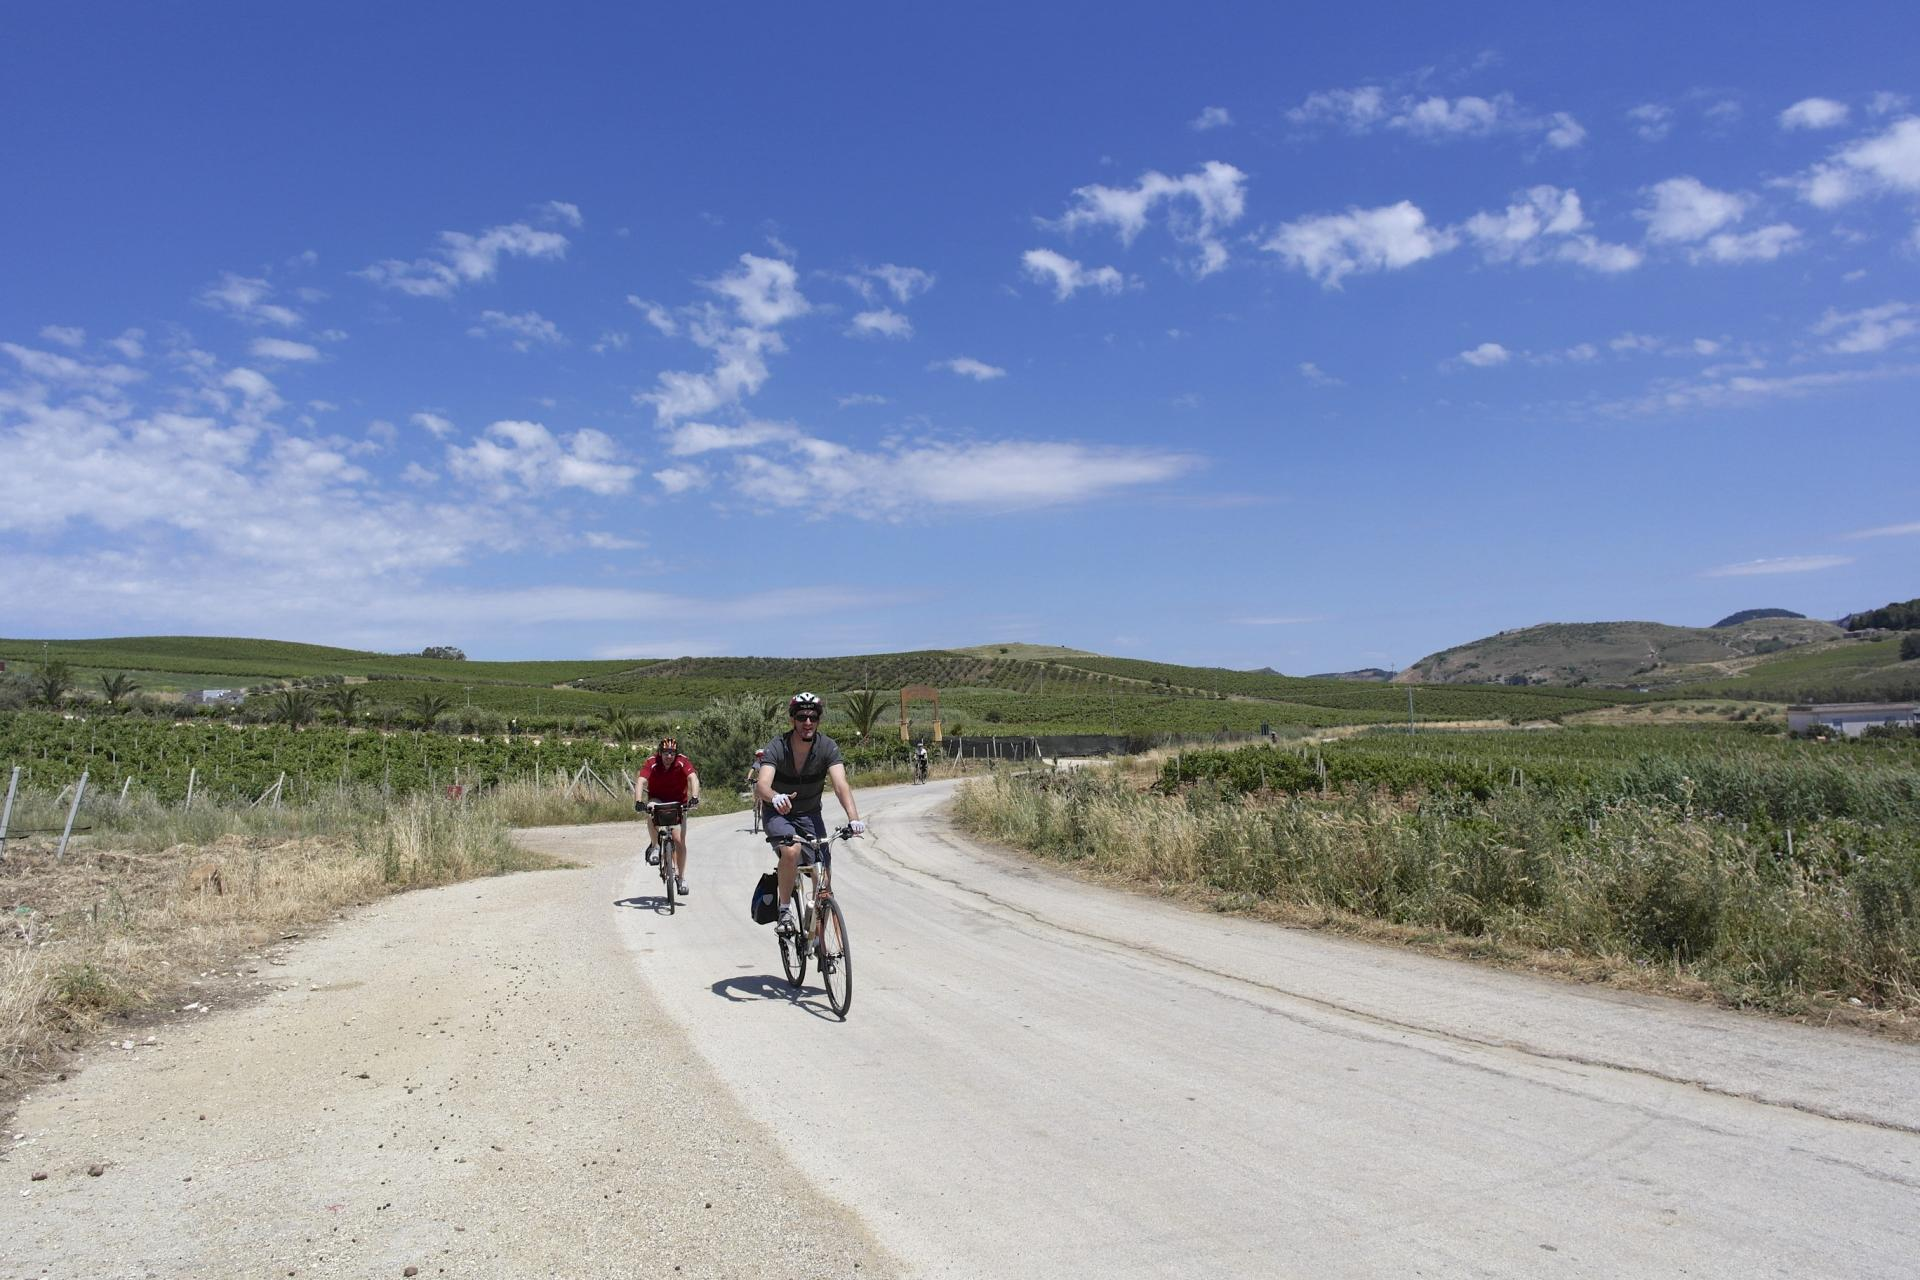 Bicycle tour in Sicily in Italy